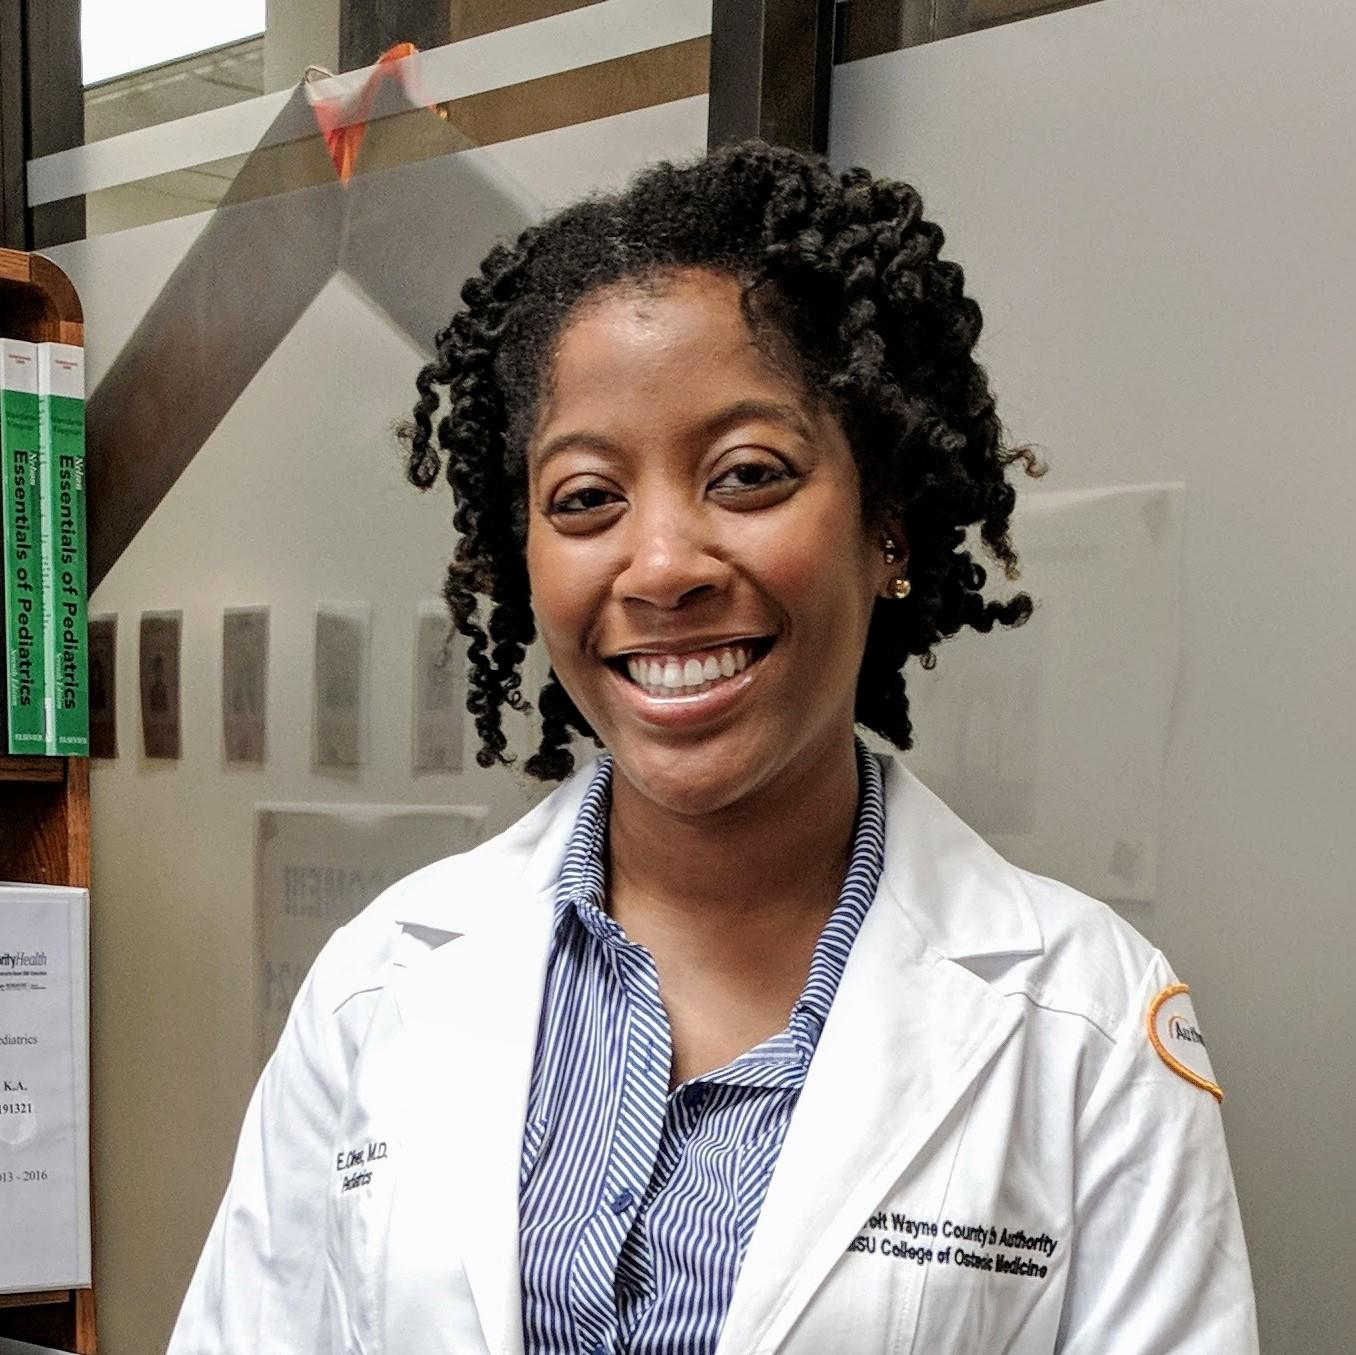 PEDIATRICIAN ERICKA OLIVER URGES PARENTS TO KEEP VACCINATION SCHEDULE AND TO STAY ON TOP OF MENTAL HEALTH DURING THESE NEWS-HEAVY DAYS